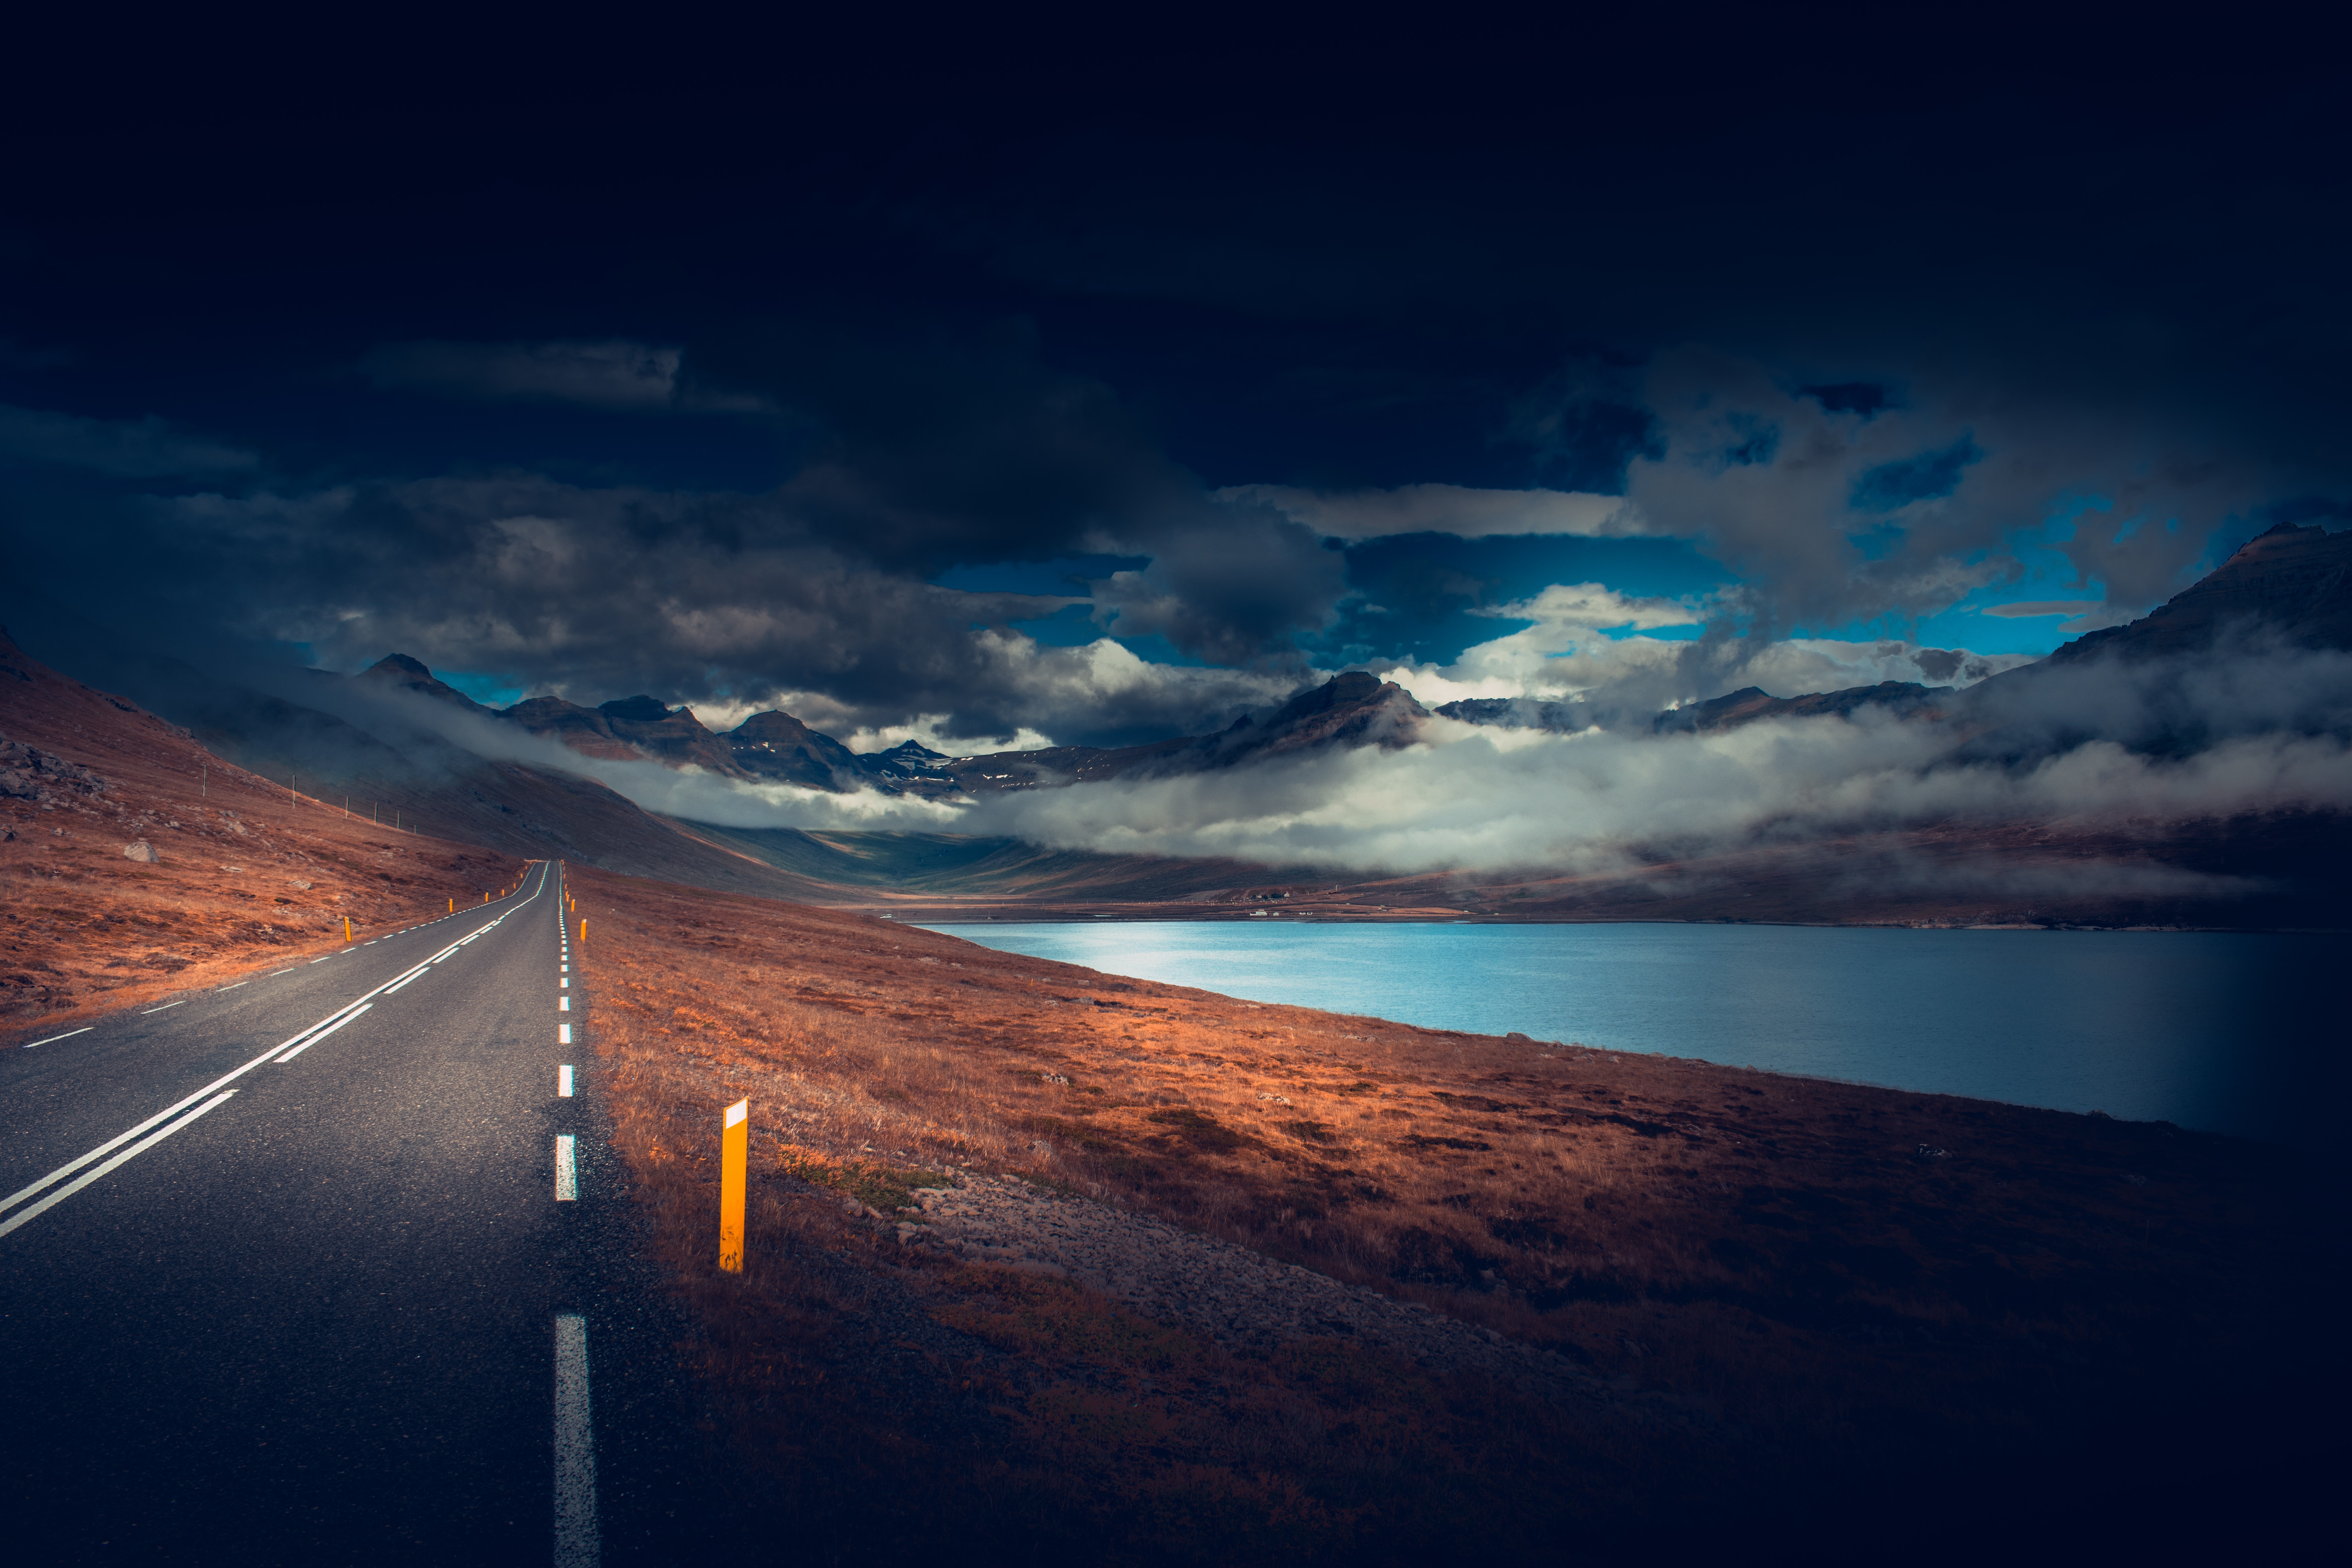 Free wallpaper 117986: Nature, Road, Asphalt, Markup, Lake, Dark, Clouds, Mountains download pictures for cellphone